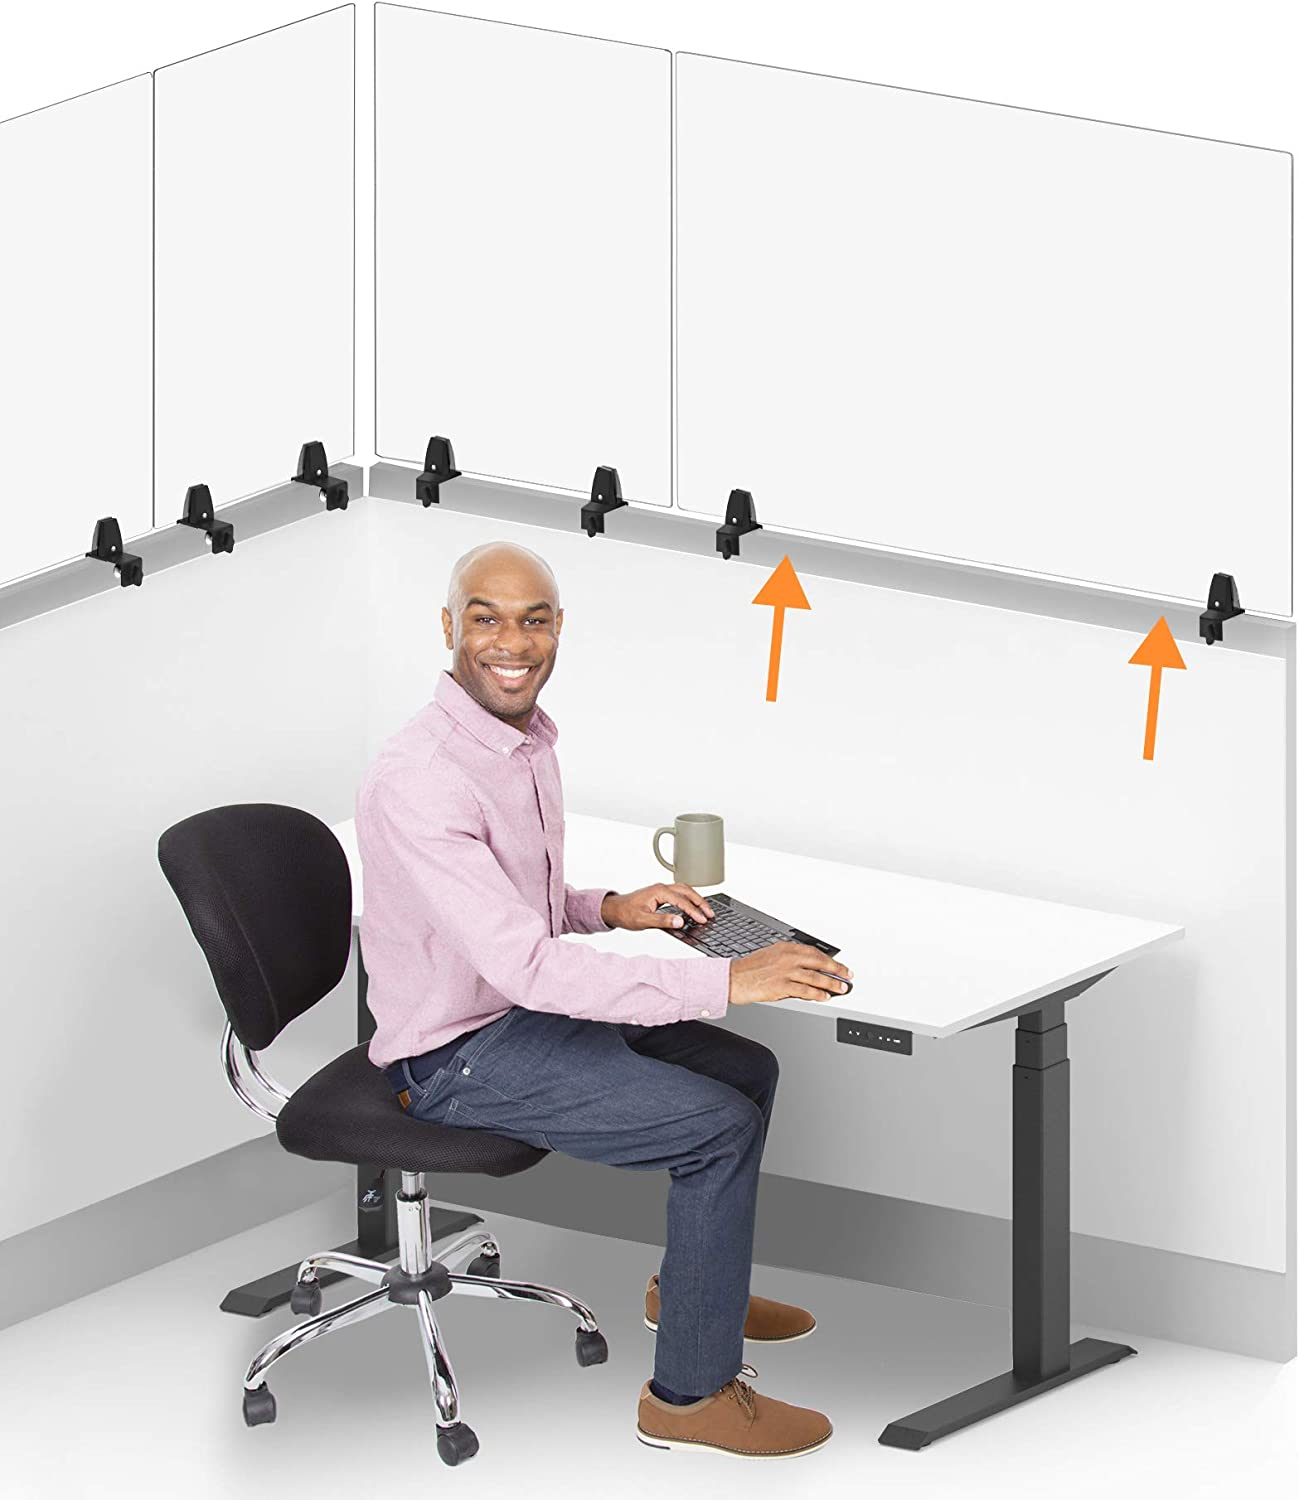 Stand Steady Clear Cubicle Wall Extender | Single 48 in x 30 in Panel | Clamp On Acrylic Shield & Sneeze Guard | Portable Desk Divider for Desk Walls & Cubicles | for Offices, Libraries & More